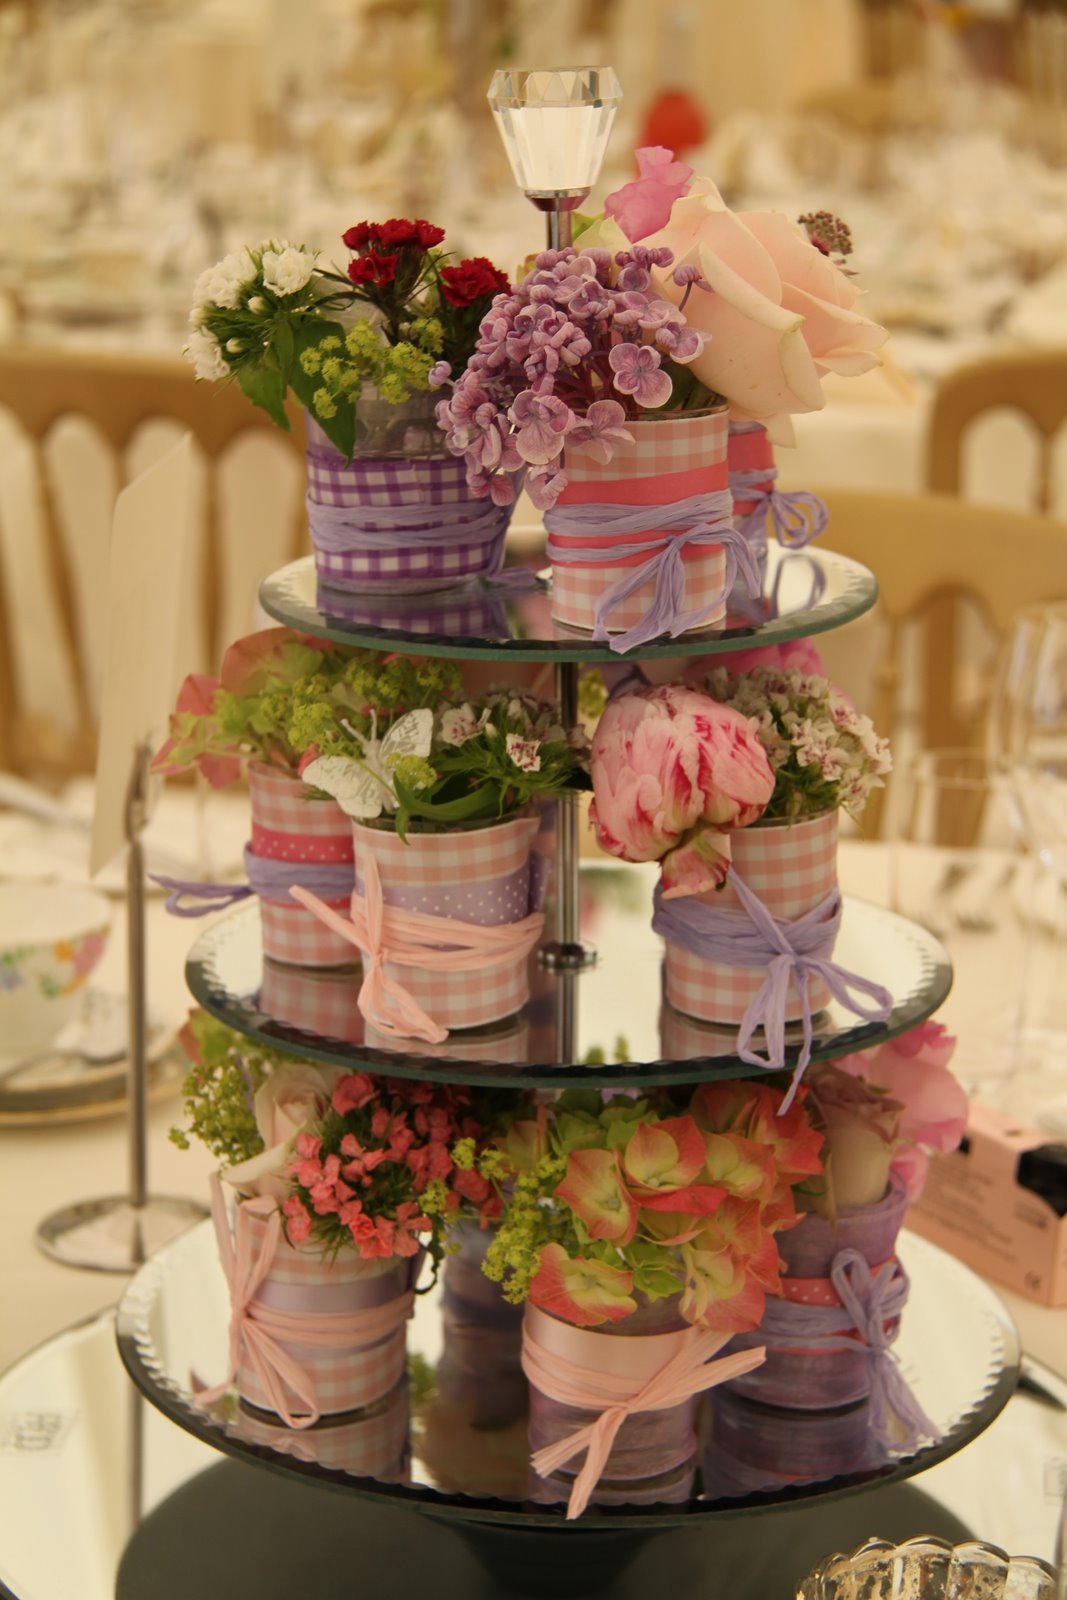 Flower design table centrepieces three tier cake stand